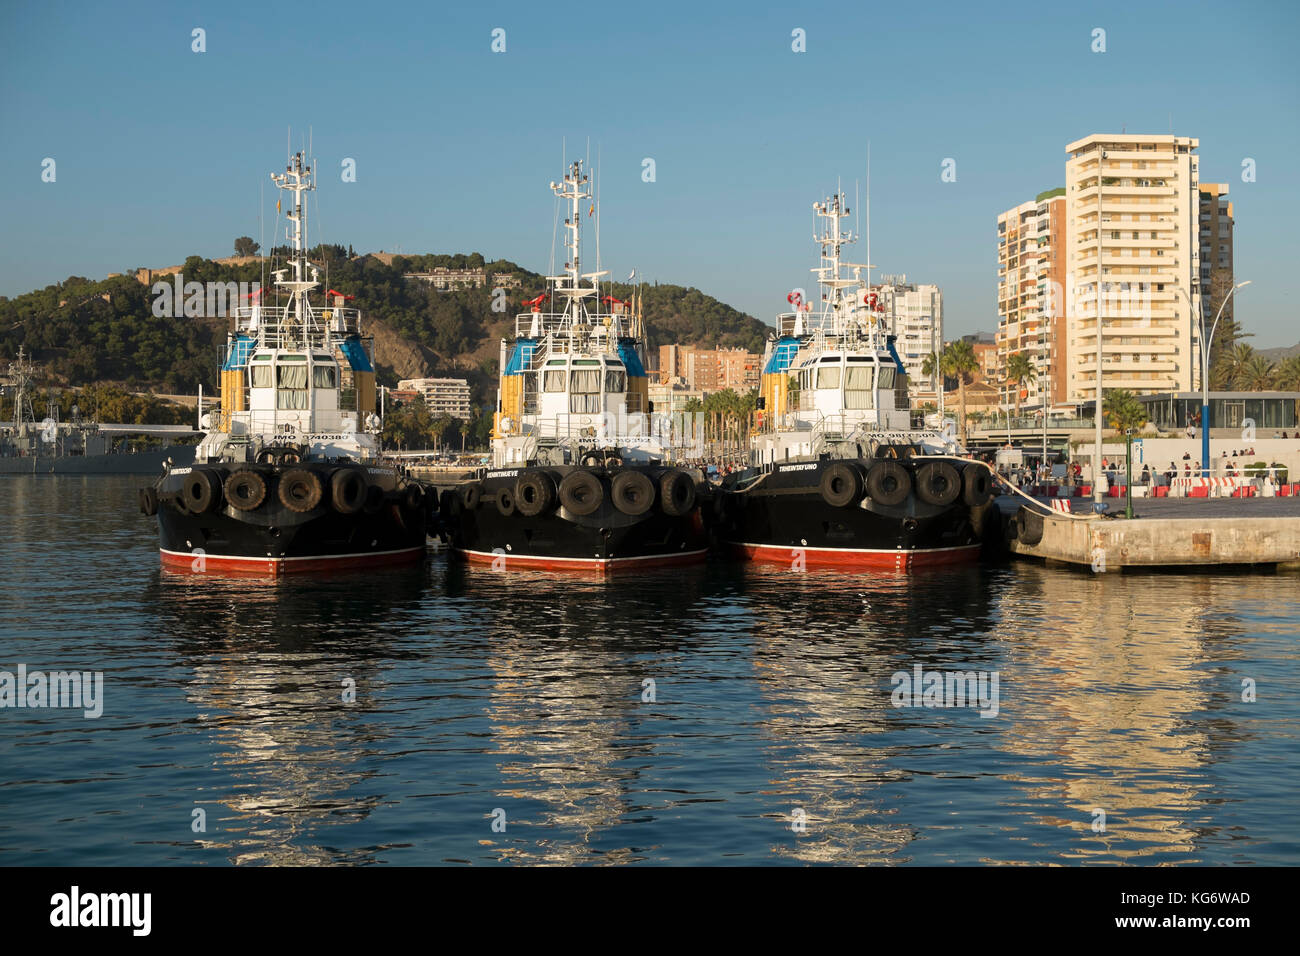 Tugboats. Port of Málaga, Andalusia, Spain. - Stock Image